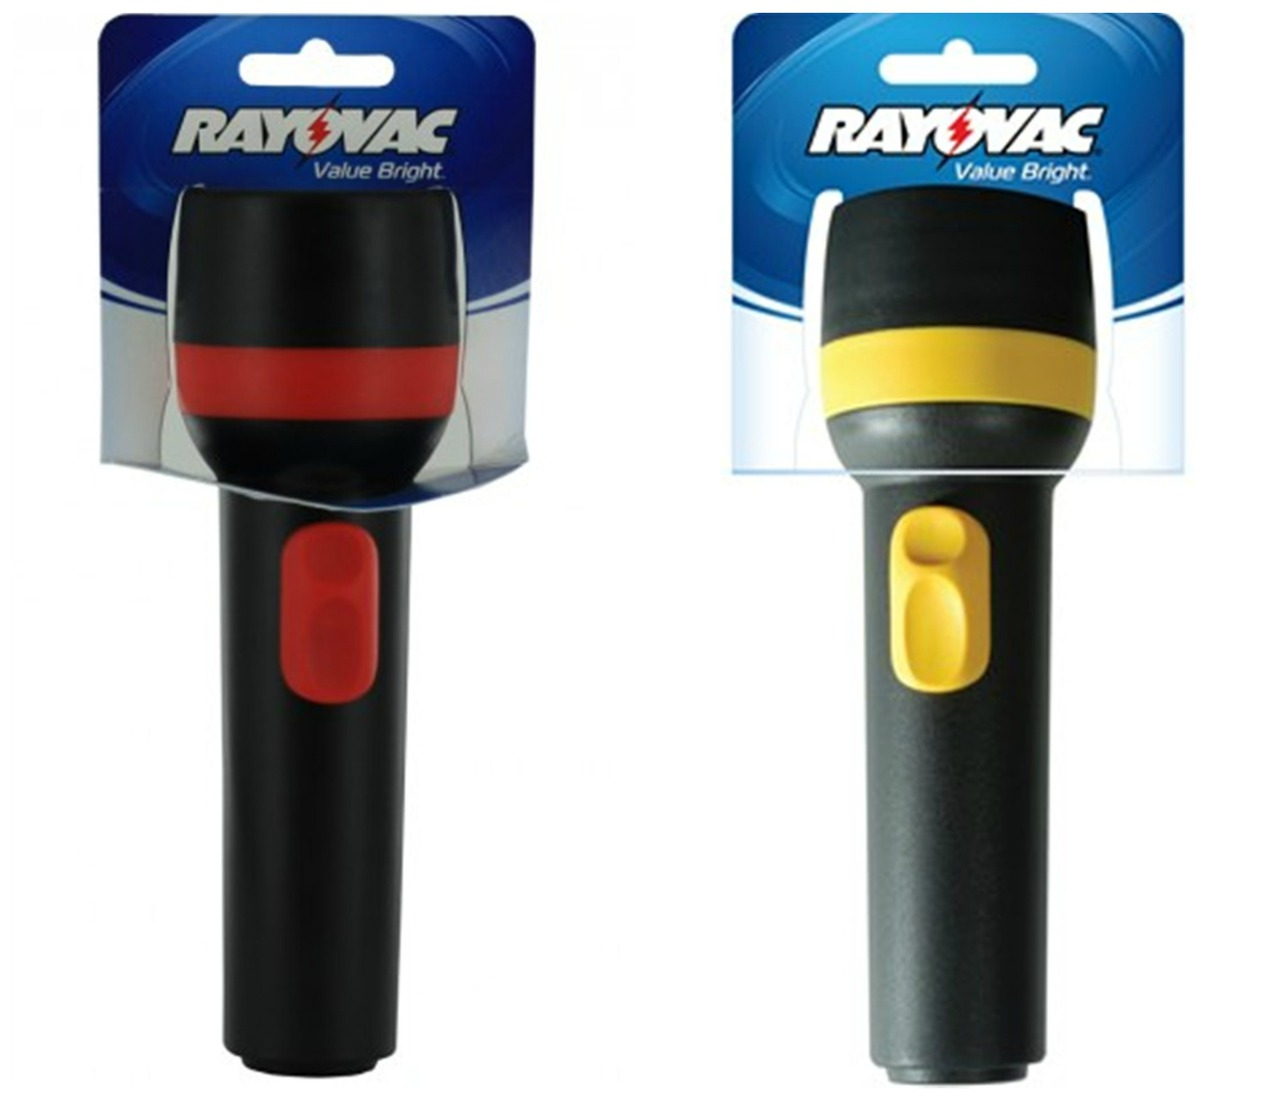 (Pack Of 2) Rayovac Value Bright 2D Economy Flashlights - 9 Lumens - Each Uses 2 D Batteries + FREE SHIPPING!